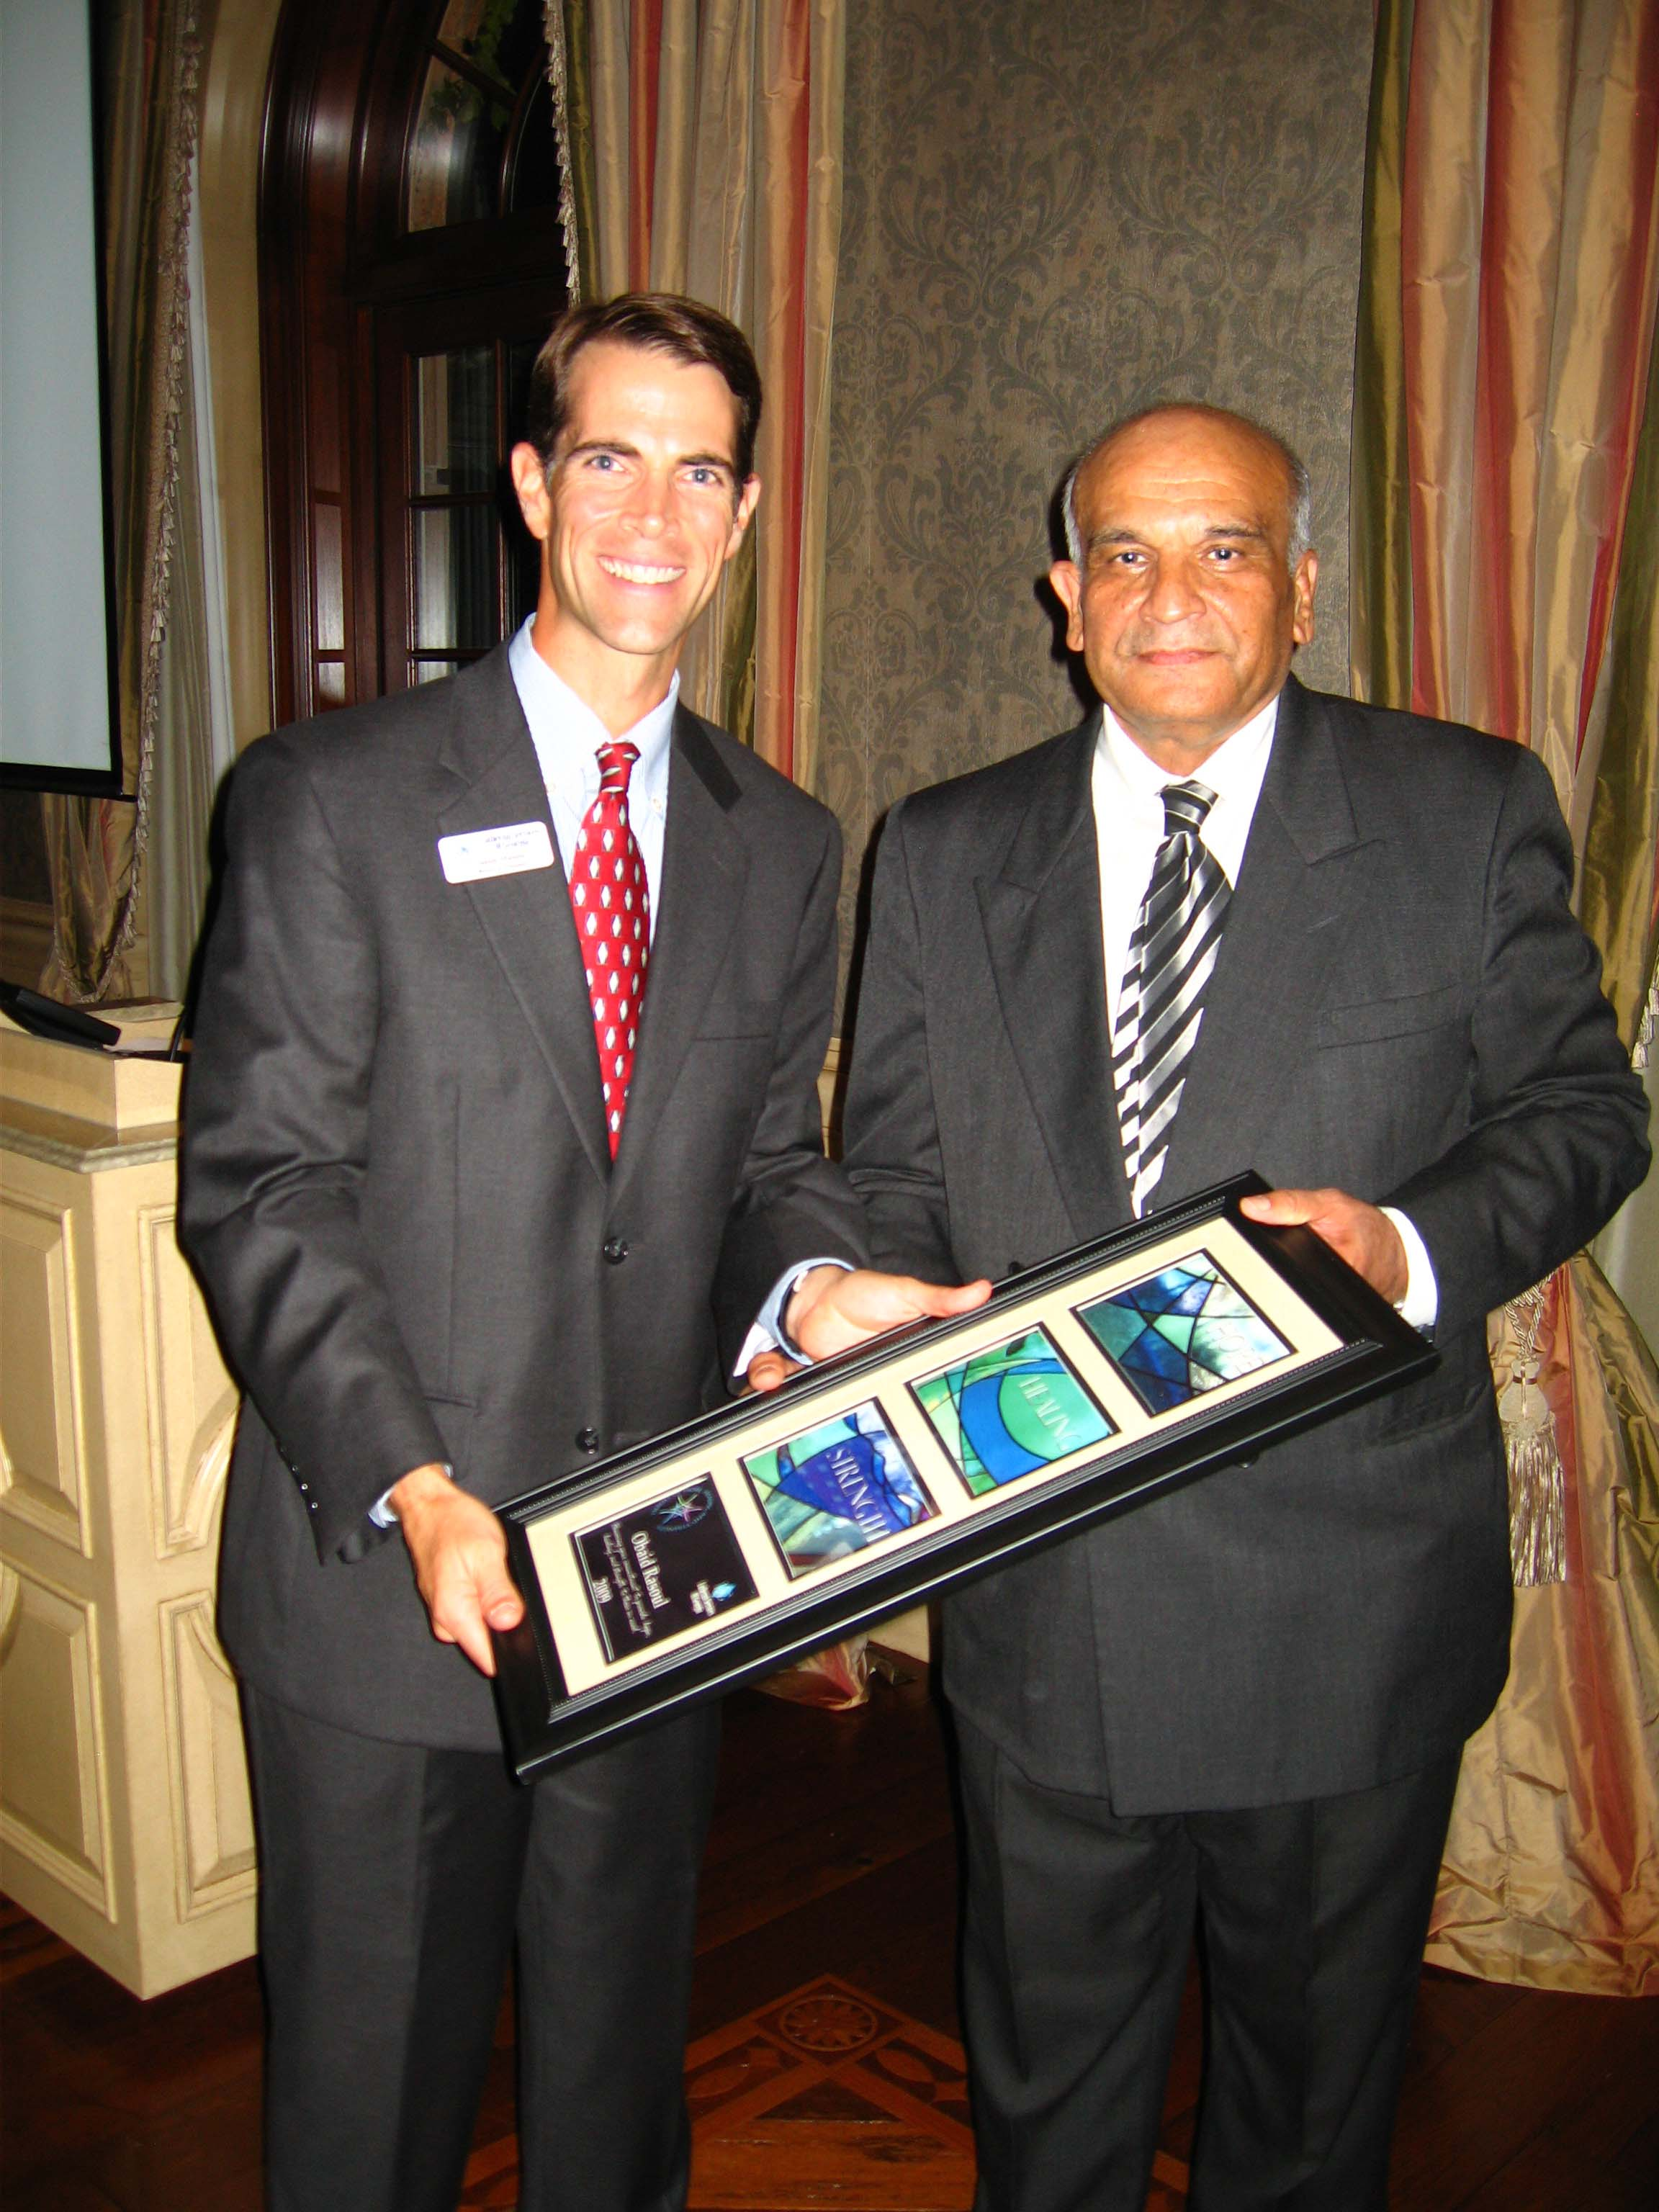 IN 2009, Obaid was honored with LSG's Heroes of Hope award.